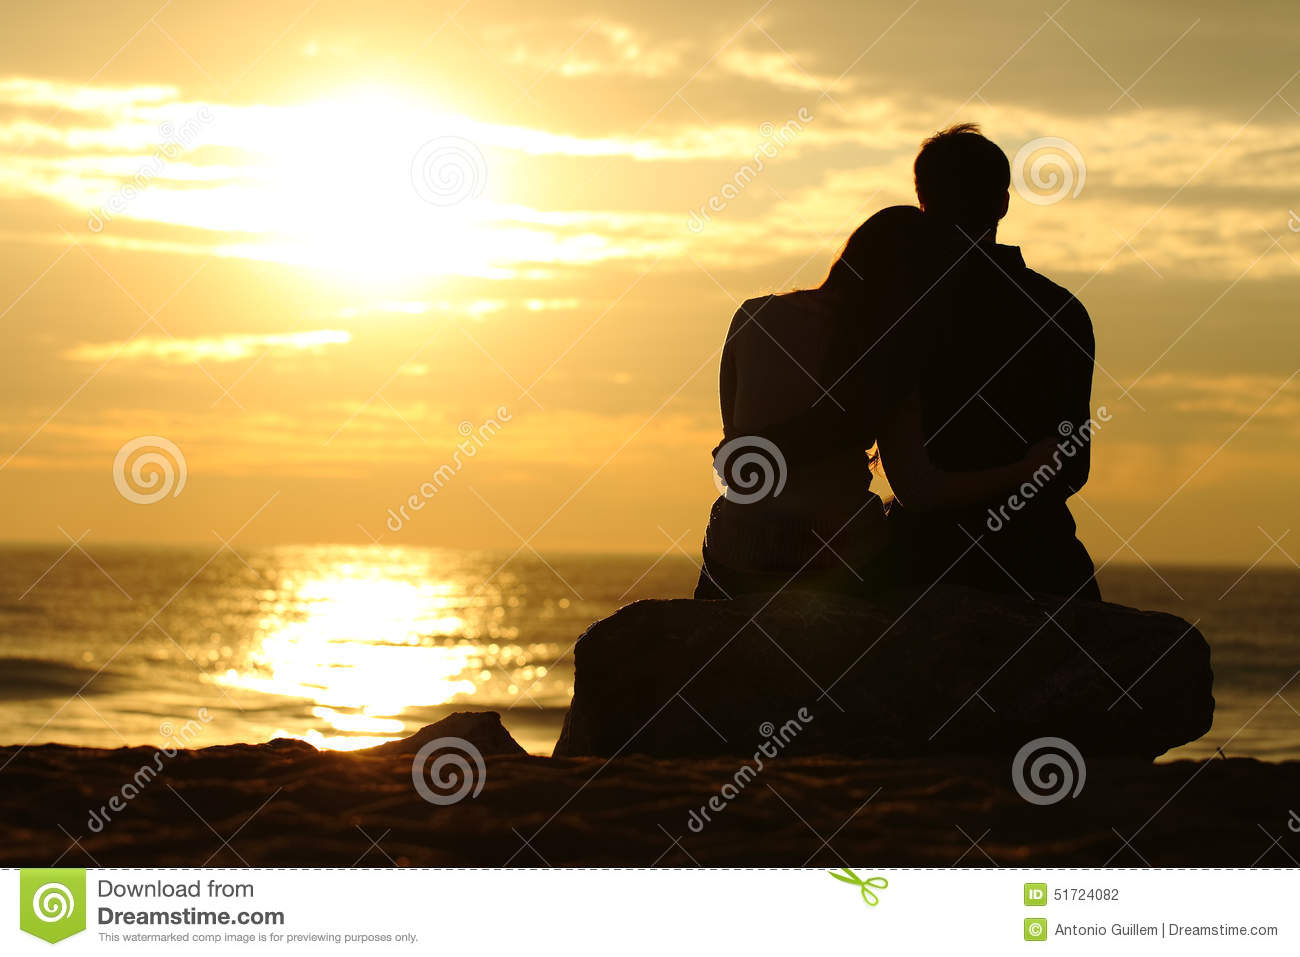 sunset beach senior dating site Long beach senior center 1150 e 4th street (562) 570-3500 information phone numbers reception desk 570-3500 information & assistance 570-3533 or 570-3534.